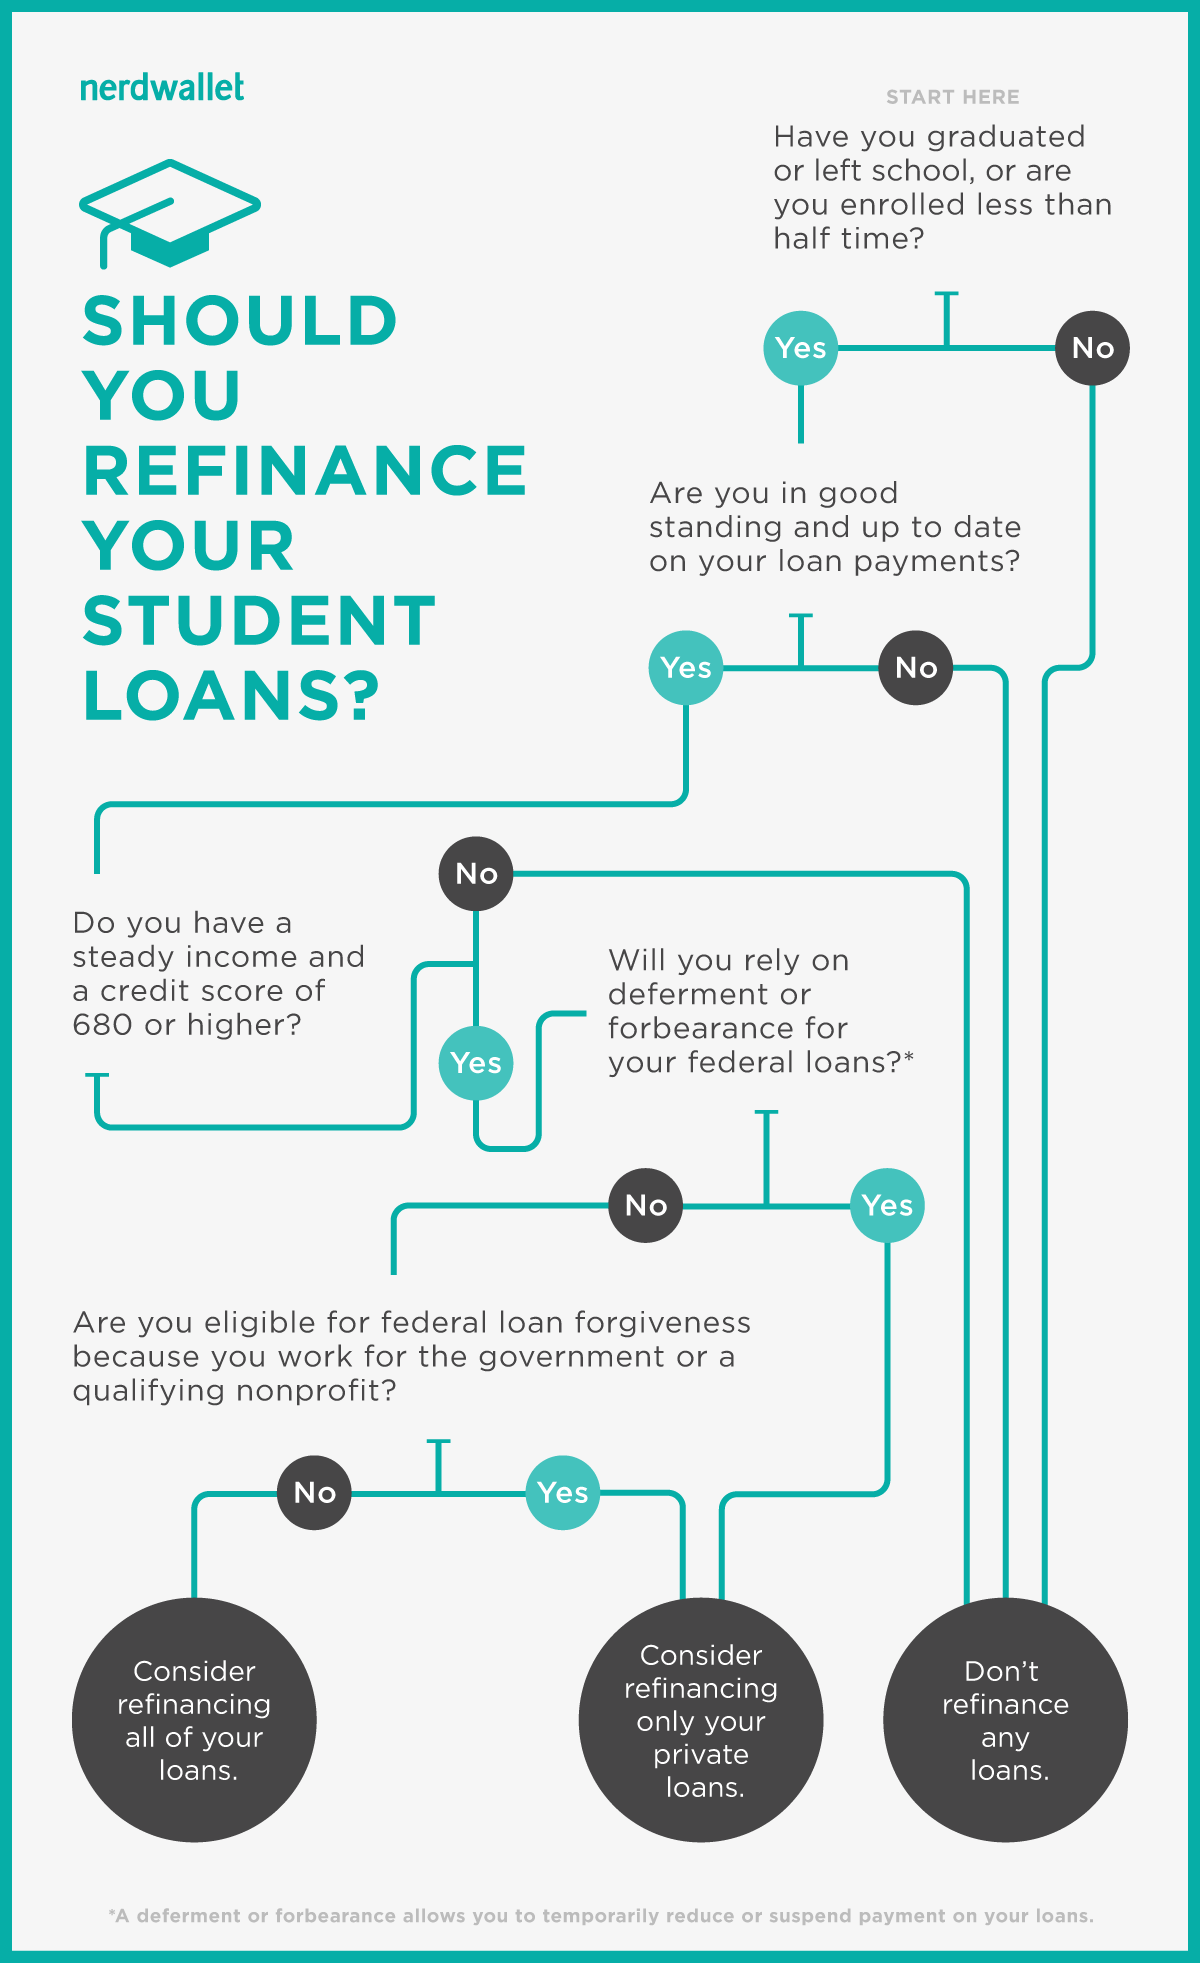 Decide When to Refinance